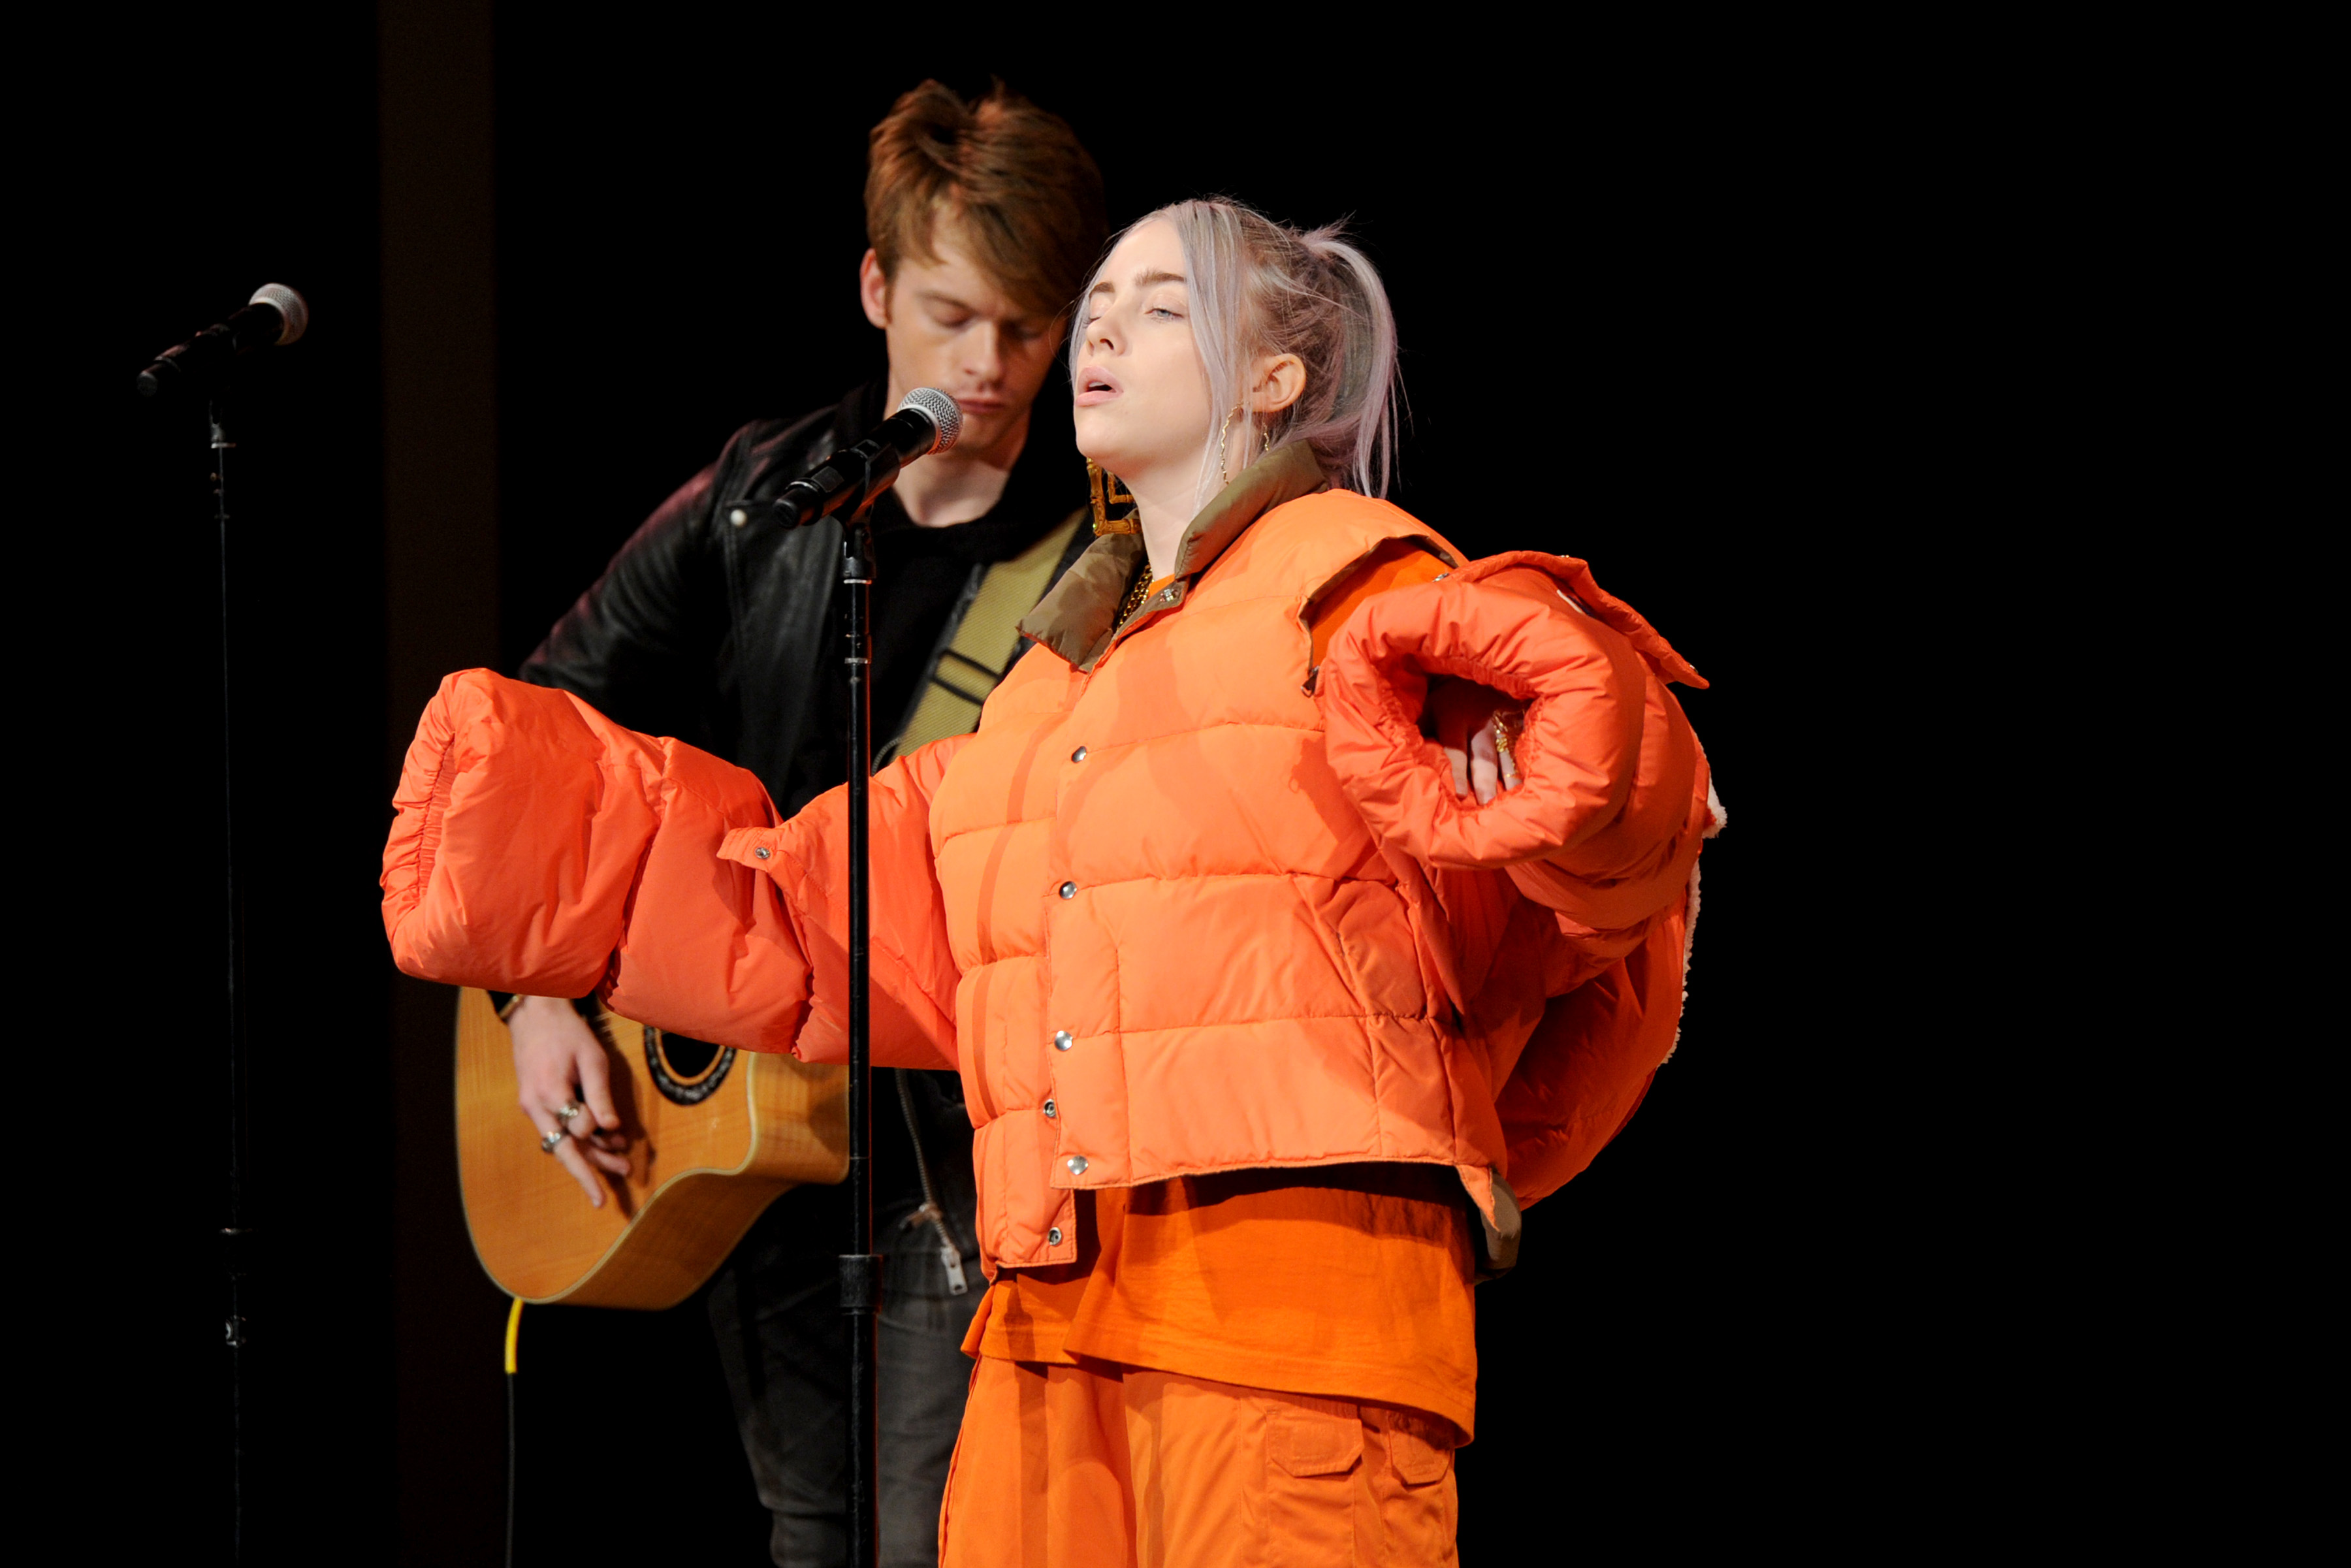 NEW YORK, NY - NOVEMBER 13:  Recording artist Billie Eilish performs onstage during Glamour Celebrates 2017 Women Of The Year Live Summit at Brooklyn Museum on November 13, 2017 in New York City.  (Photo by Craig Barritt/Getty Images for Glamour)